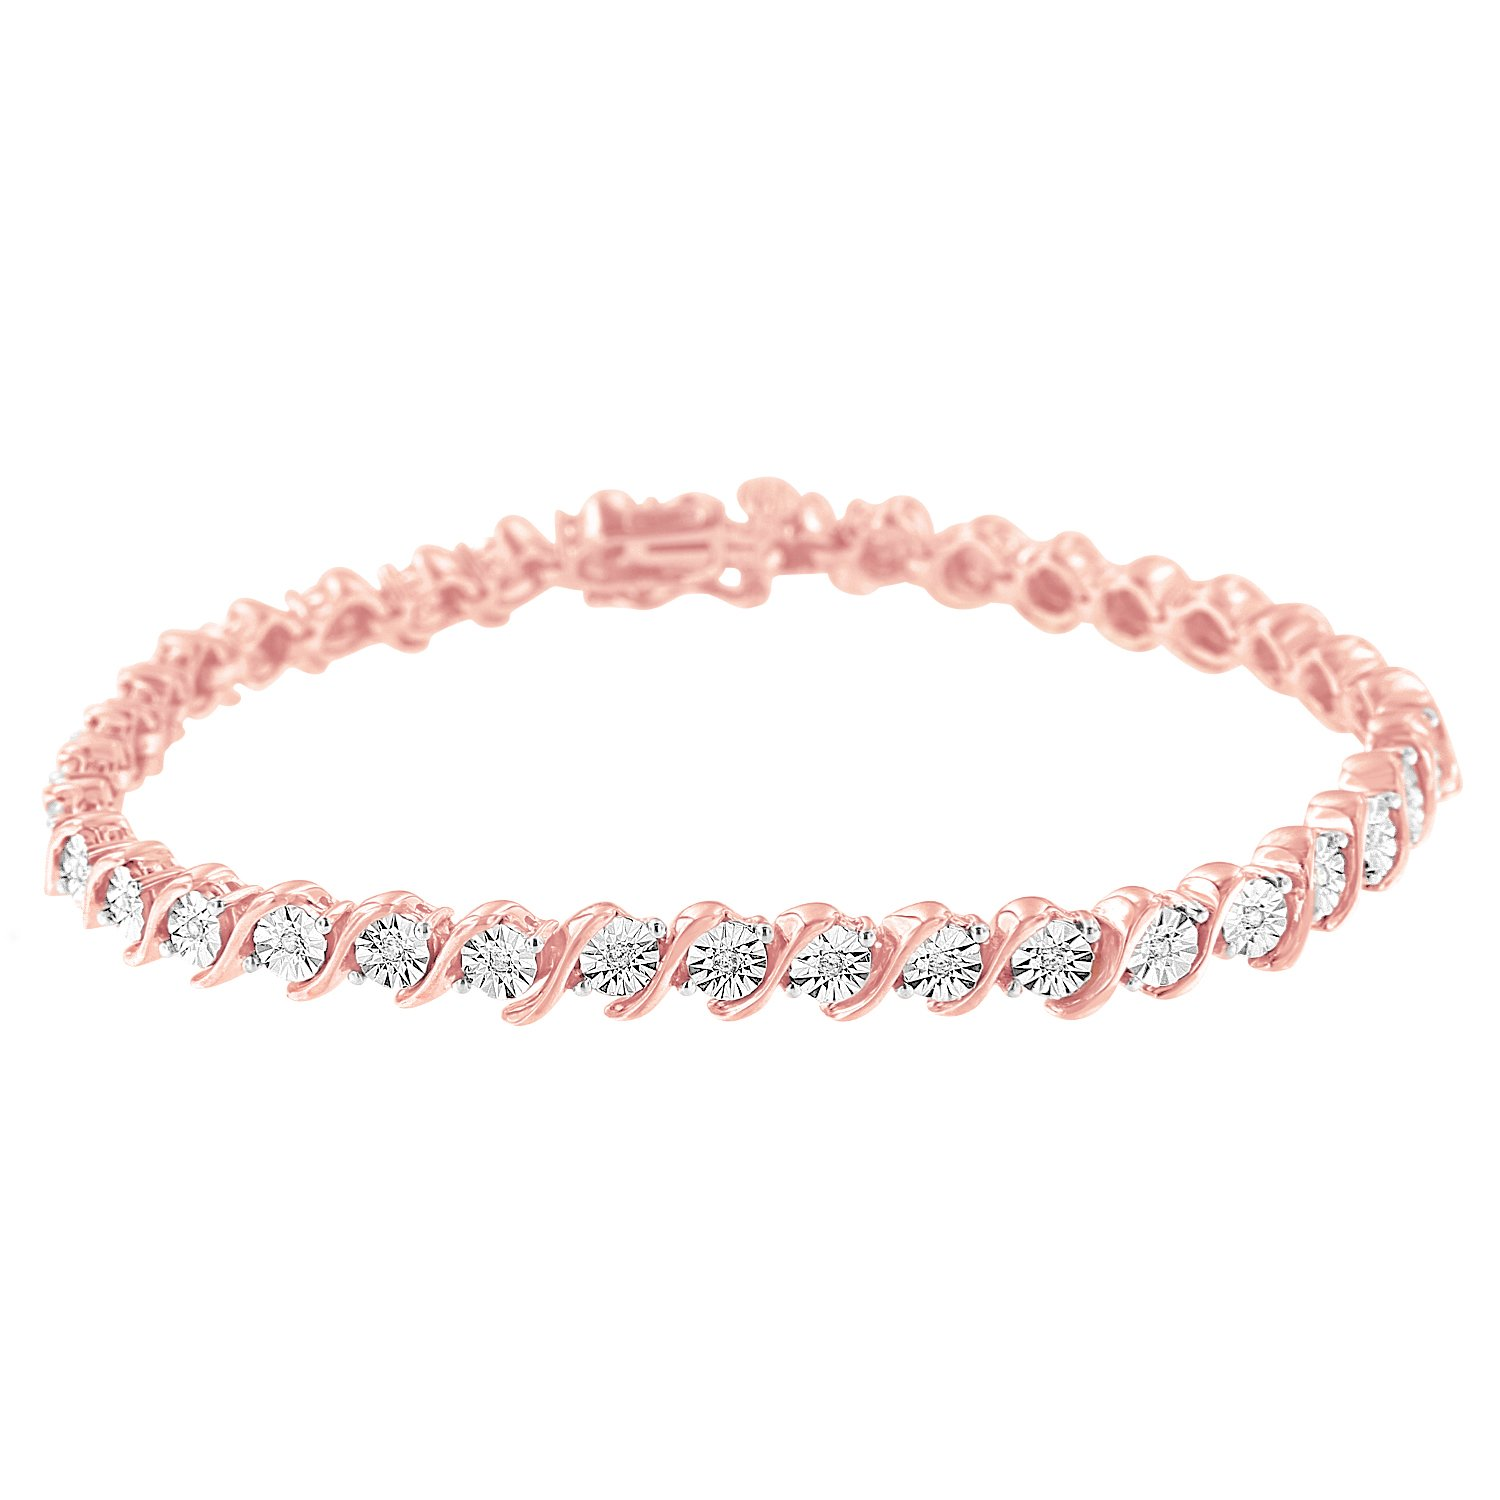 2 Micron 14K Rose Gold Plated Sterling Silver Diamond S-Link Tennis Bracelet (.10 cttw, I-J Color, I2-I3 Clarity)